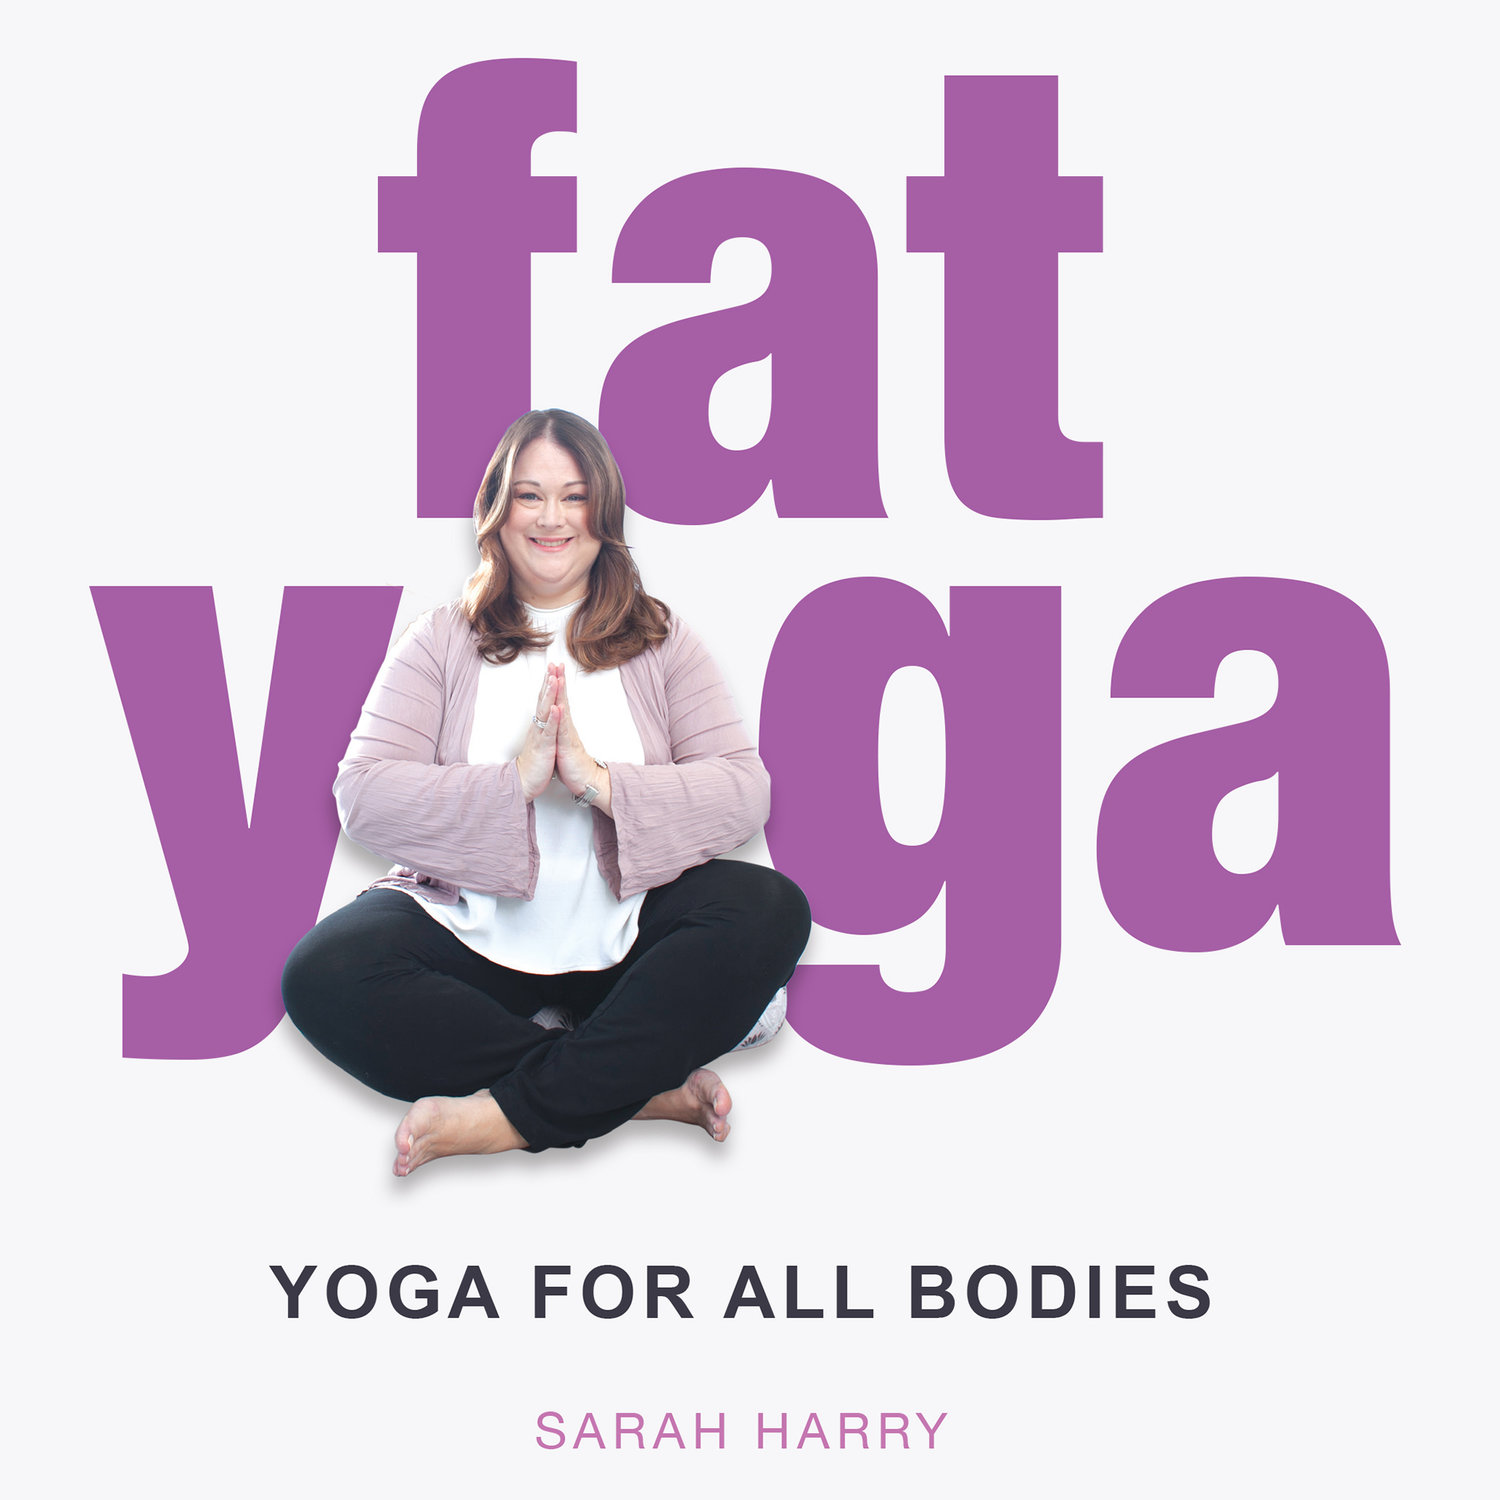 Yoga For All Bodies Book